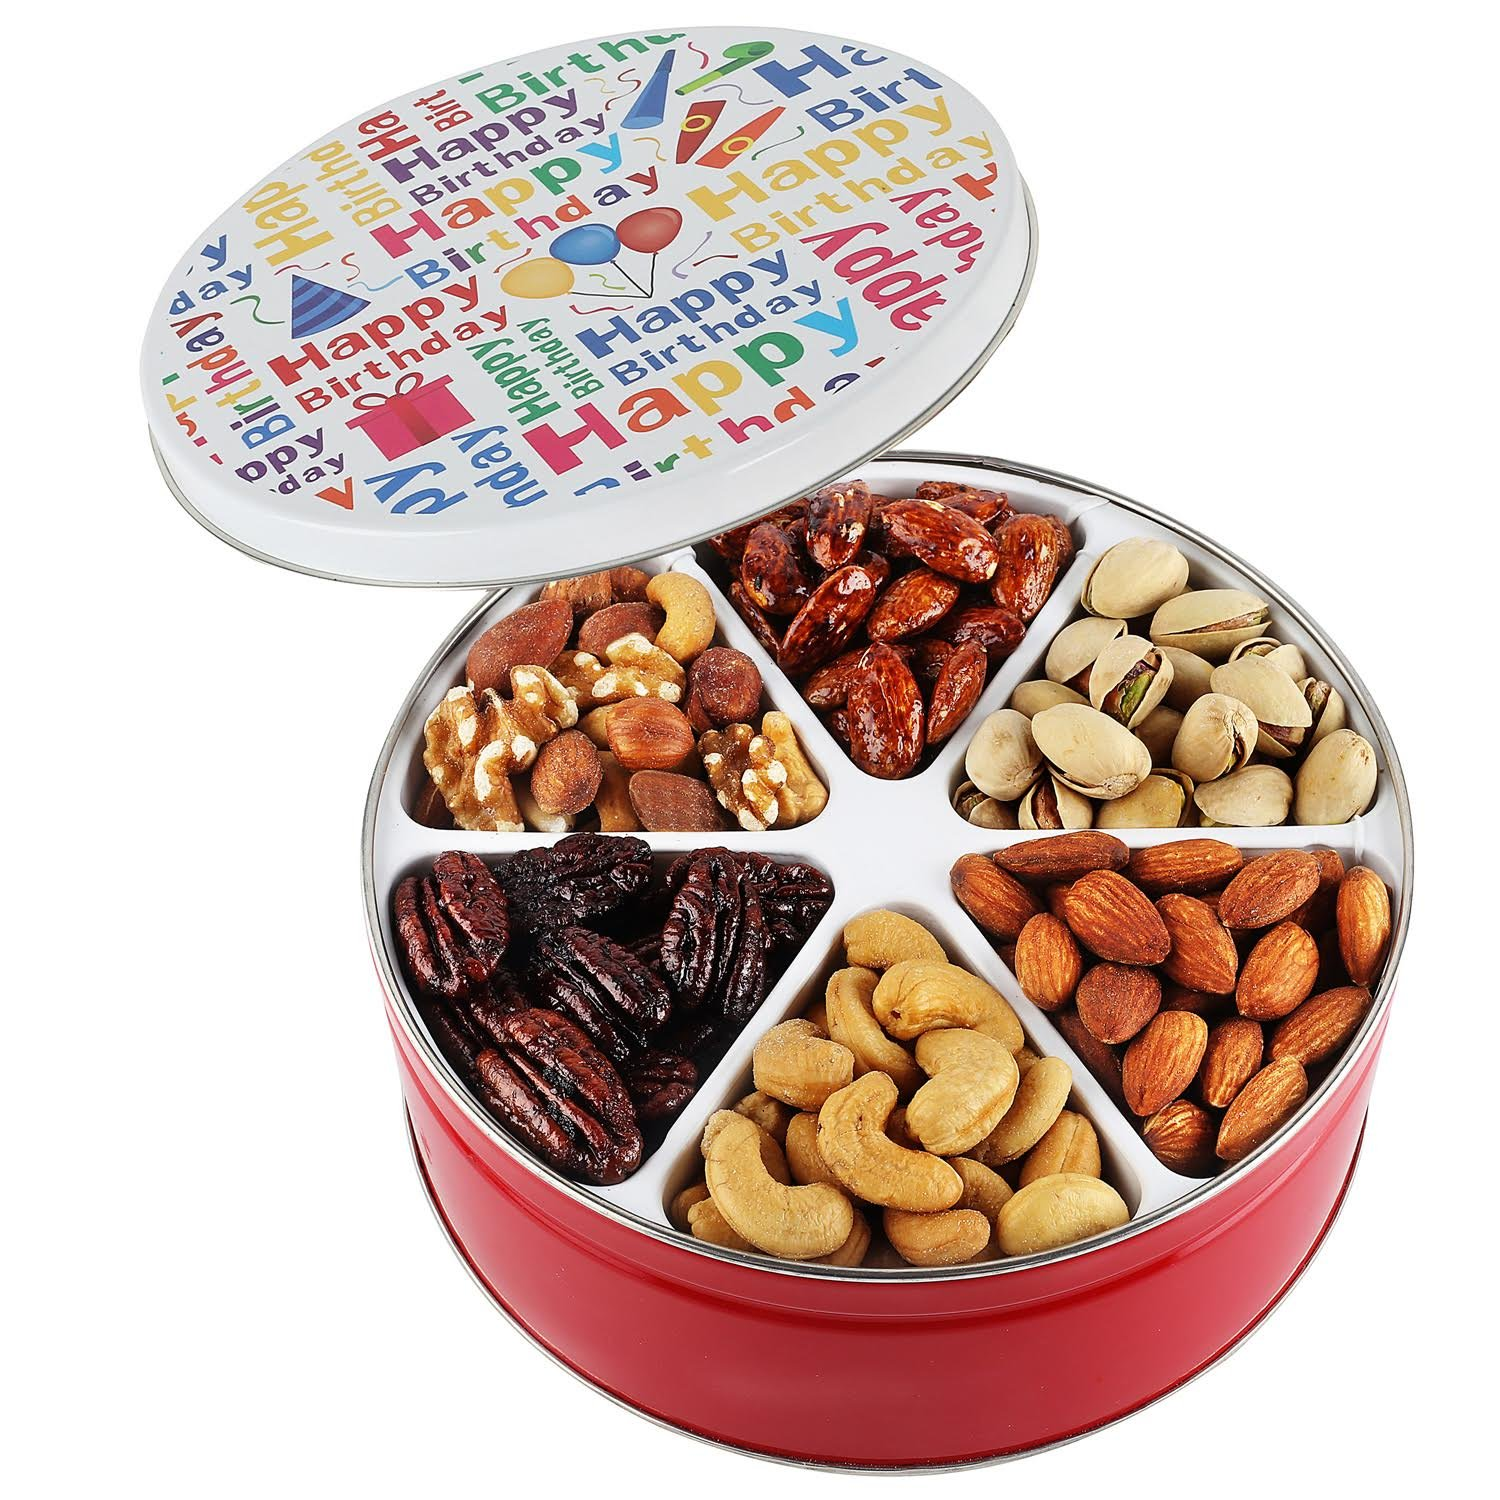 Happy birthday nuts gift basket Tin Six Sectional filled with Assorted Freshly Roasted Nuts about 1.25 pounds Great Healthy Gift idea for HIM HER BOYS GIRLS MEN WOMEN PRIME DELIVERY by Going Nuts